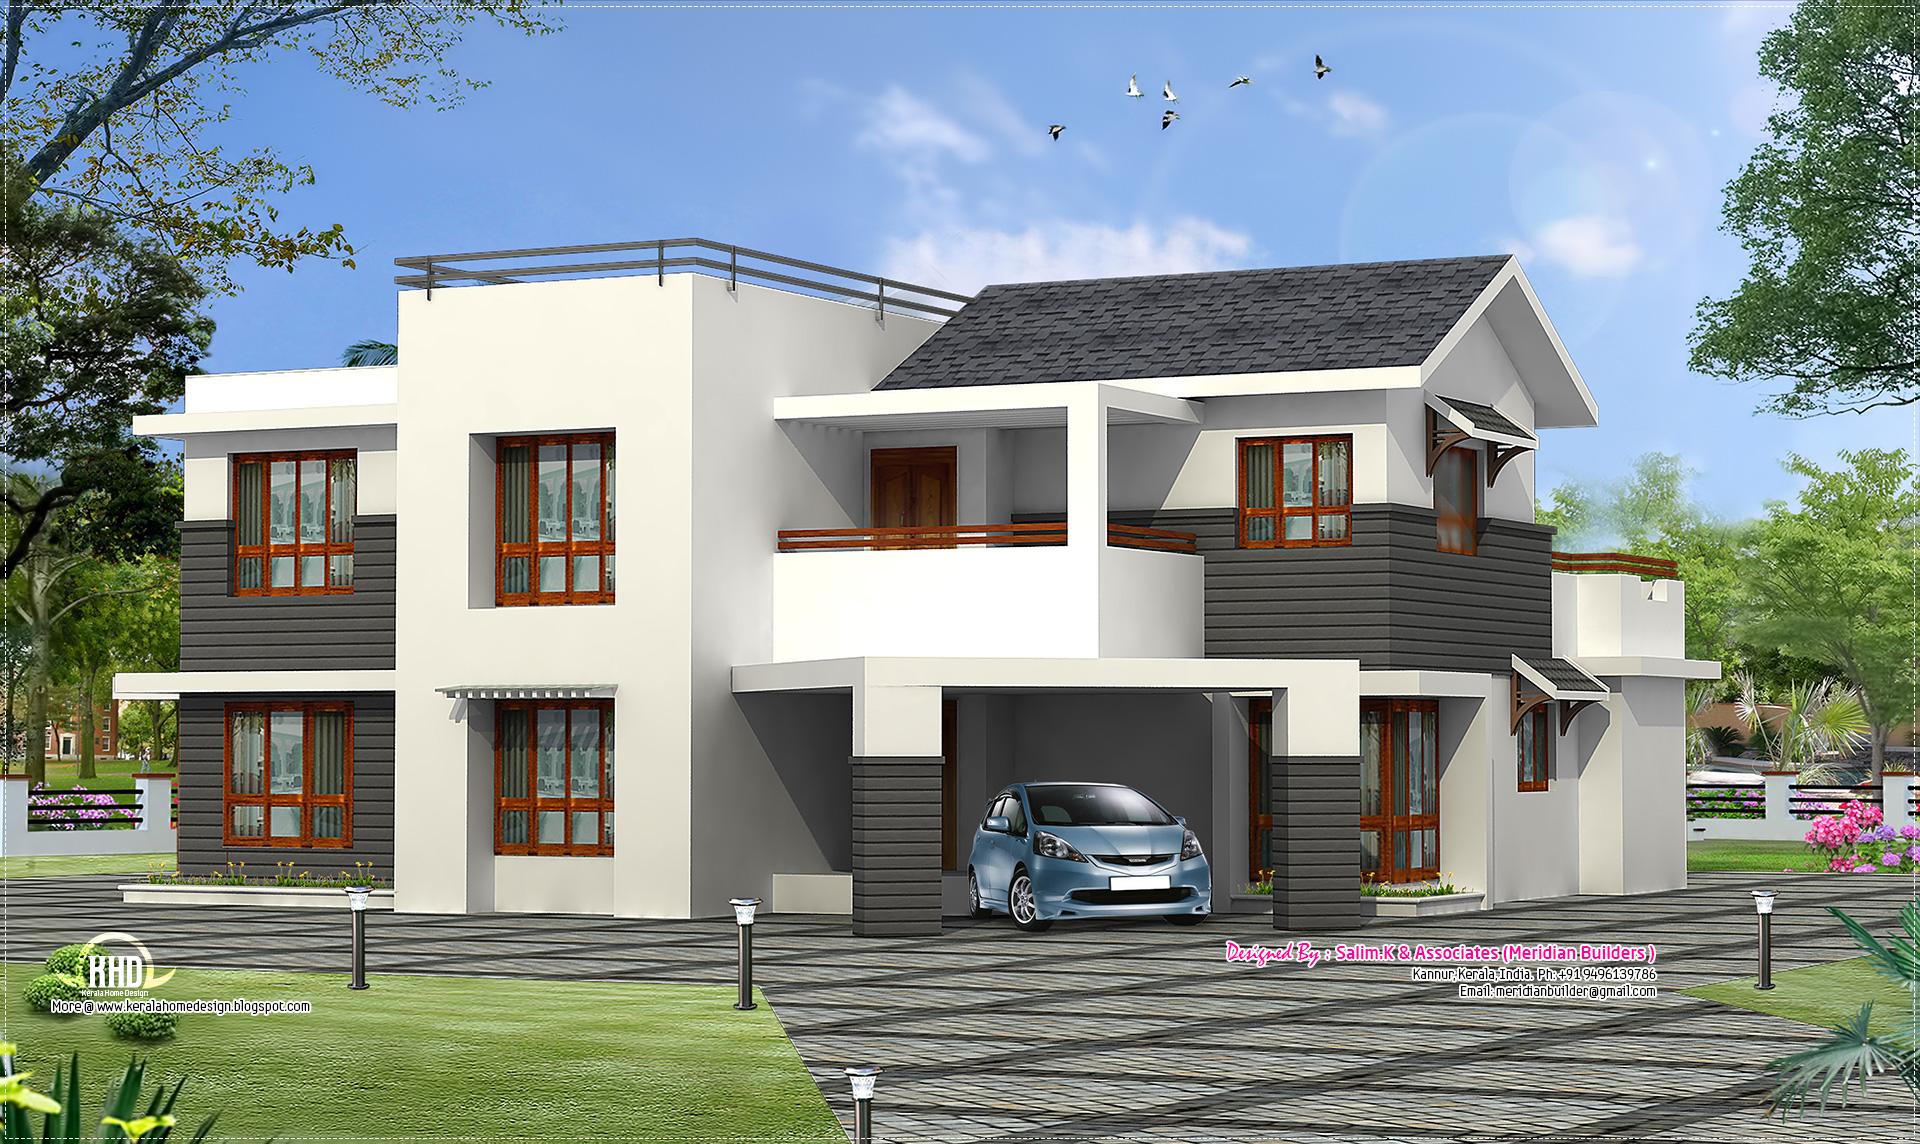 Contemporary villa design from kannur kerala kerala for 3000 square foot home